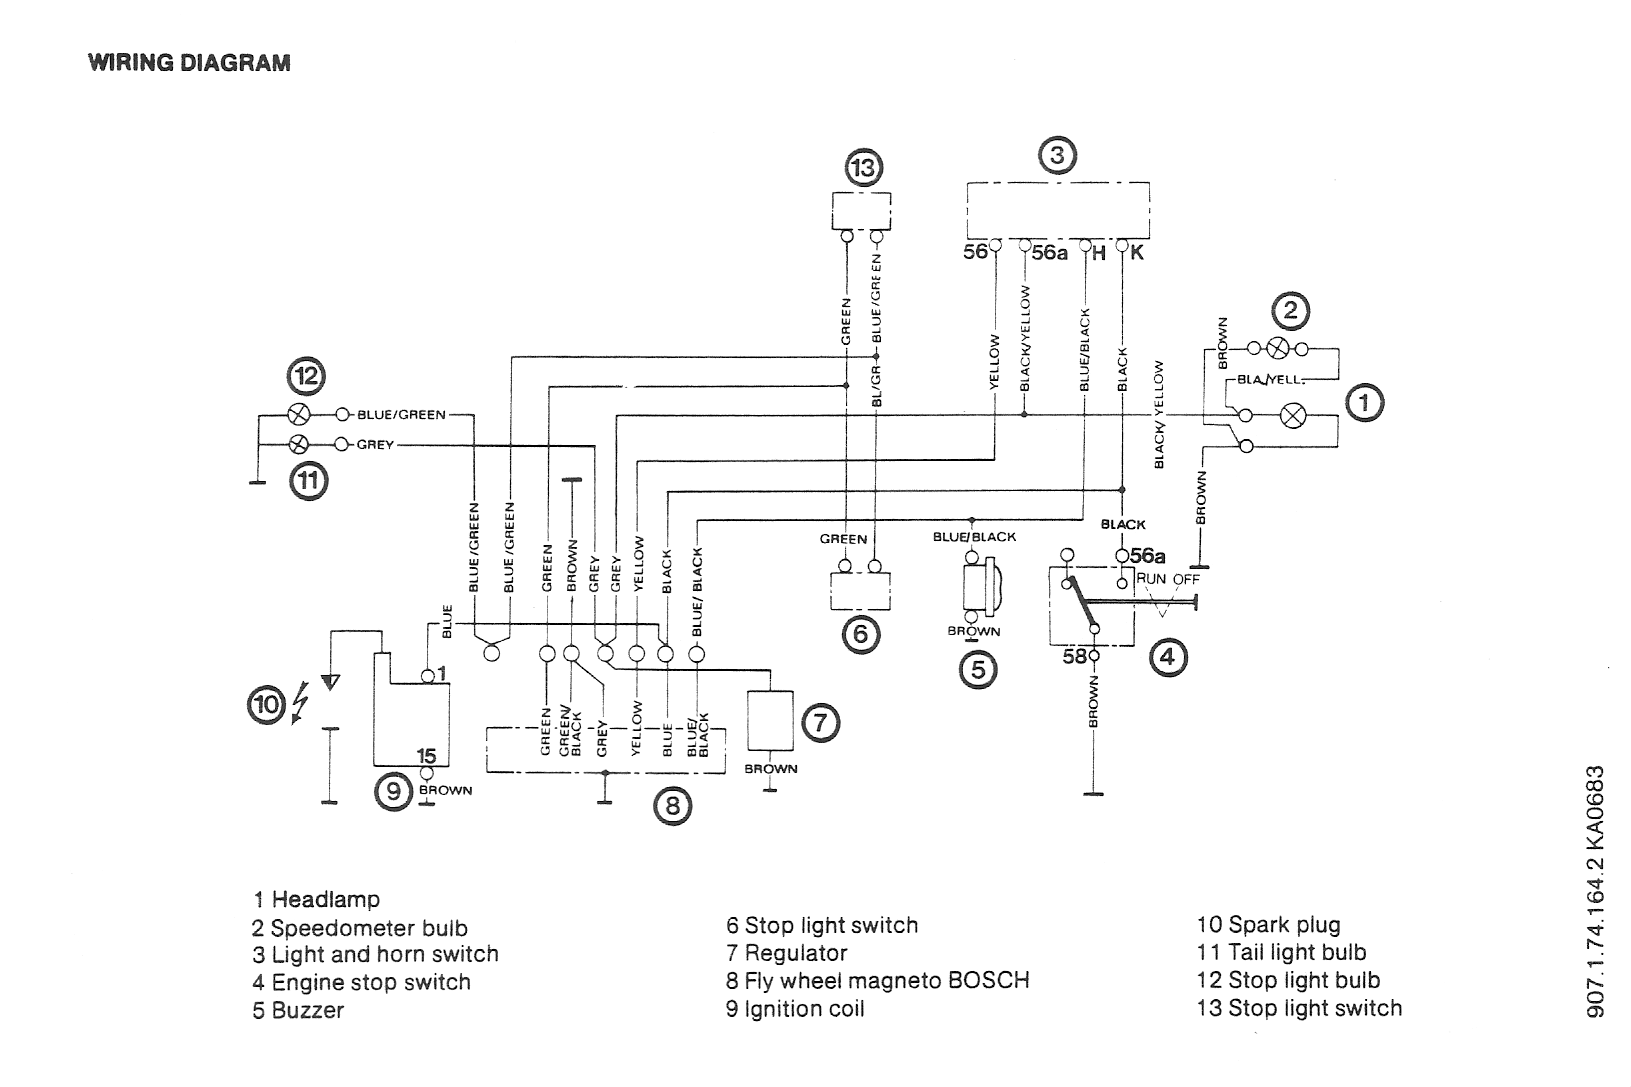 72 ford maverick wiring diagram 72 pontiac lemans wiring